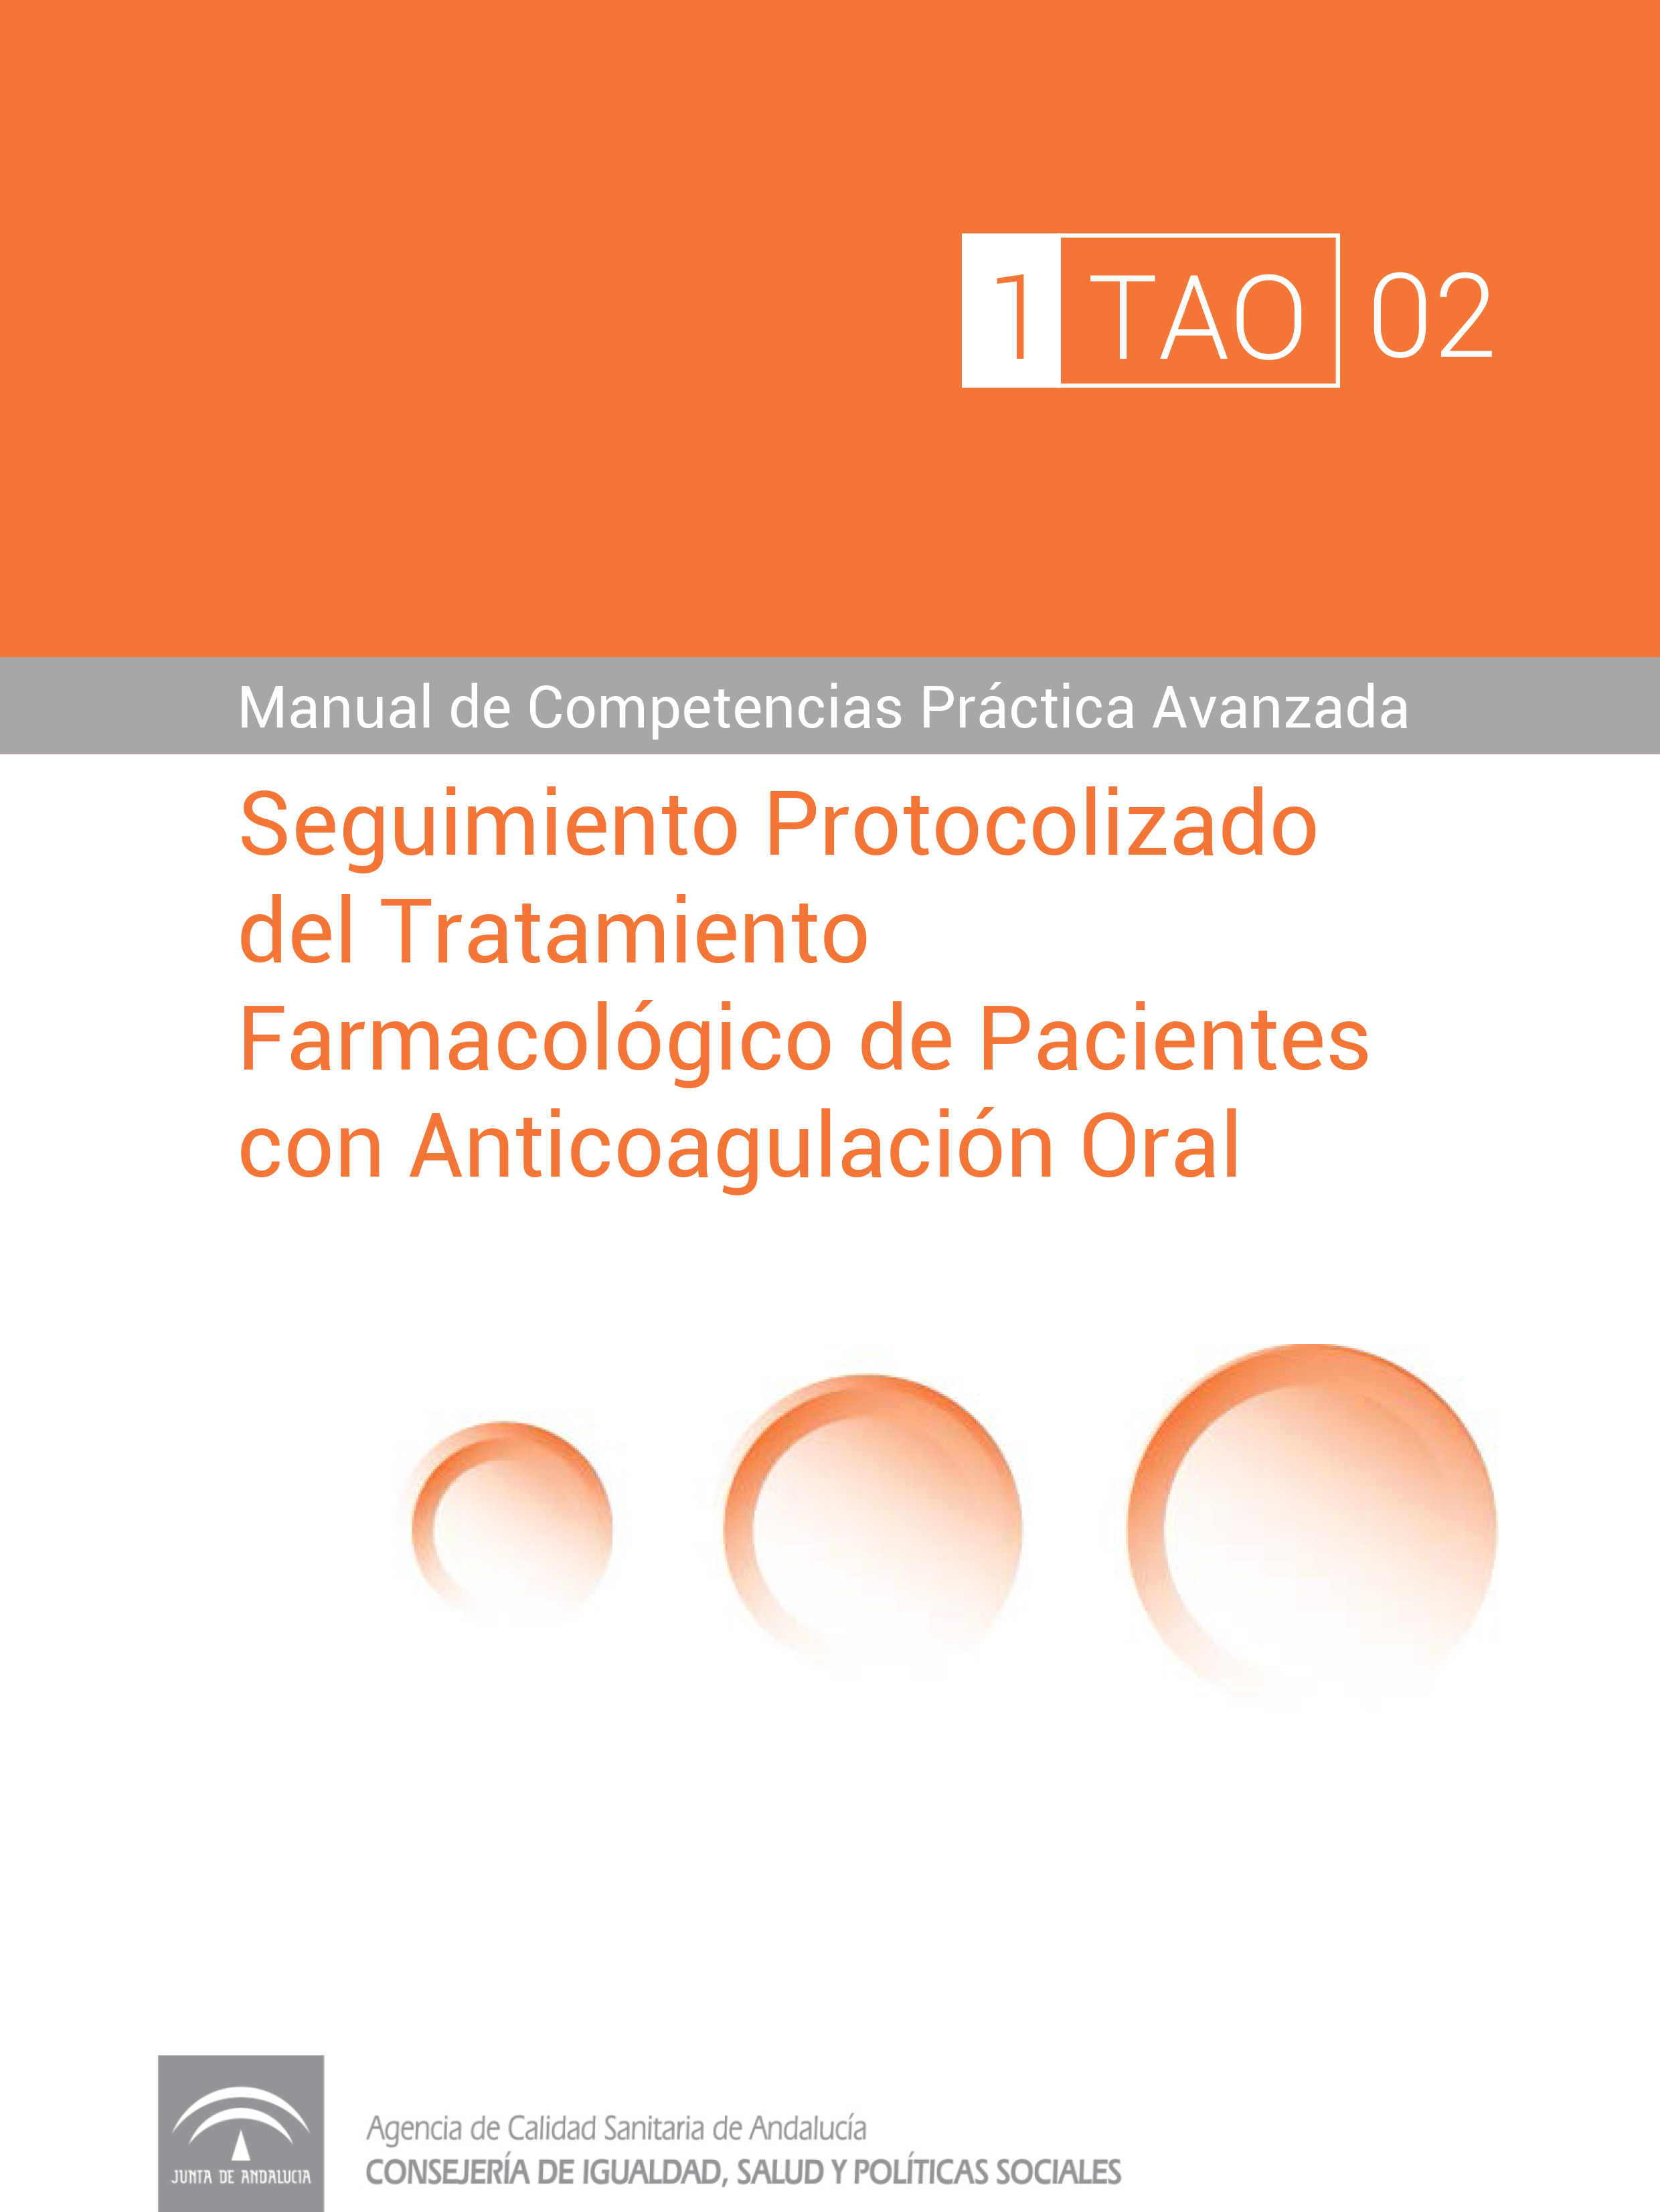 Protocolised Follow-up of the Pharmacological Treatment of Patients with Oral Anticoagulation